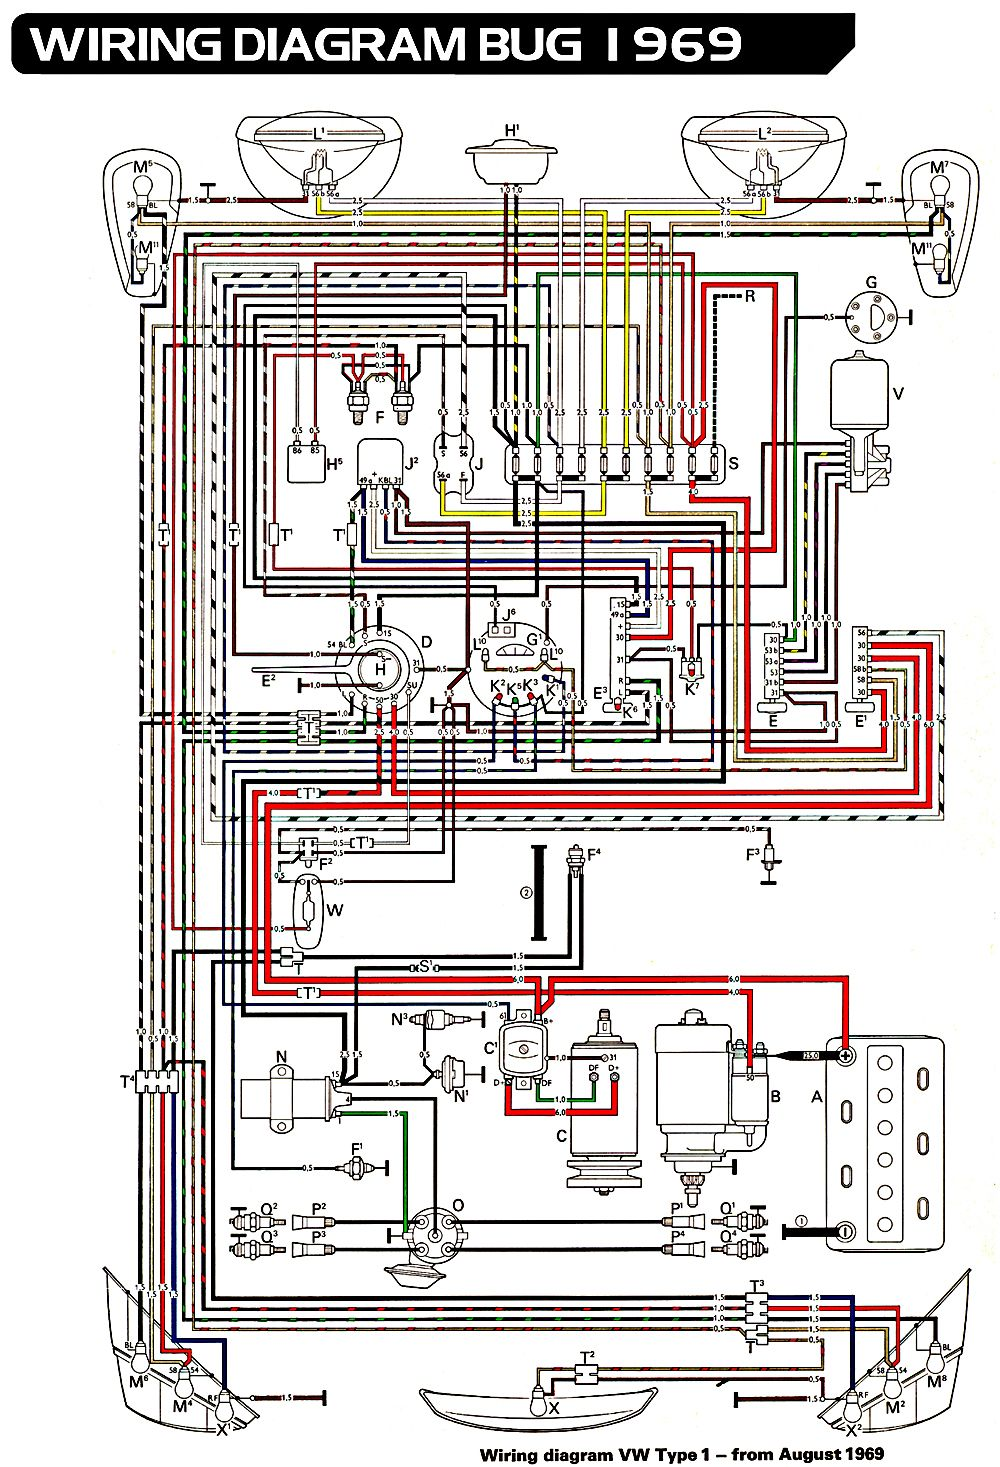 1970 bug wiring diagram volkswagen beetle wiring diagram - 1966 vw beetle wiring ... 1961 vw bug wiring diagram